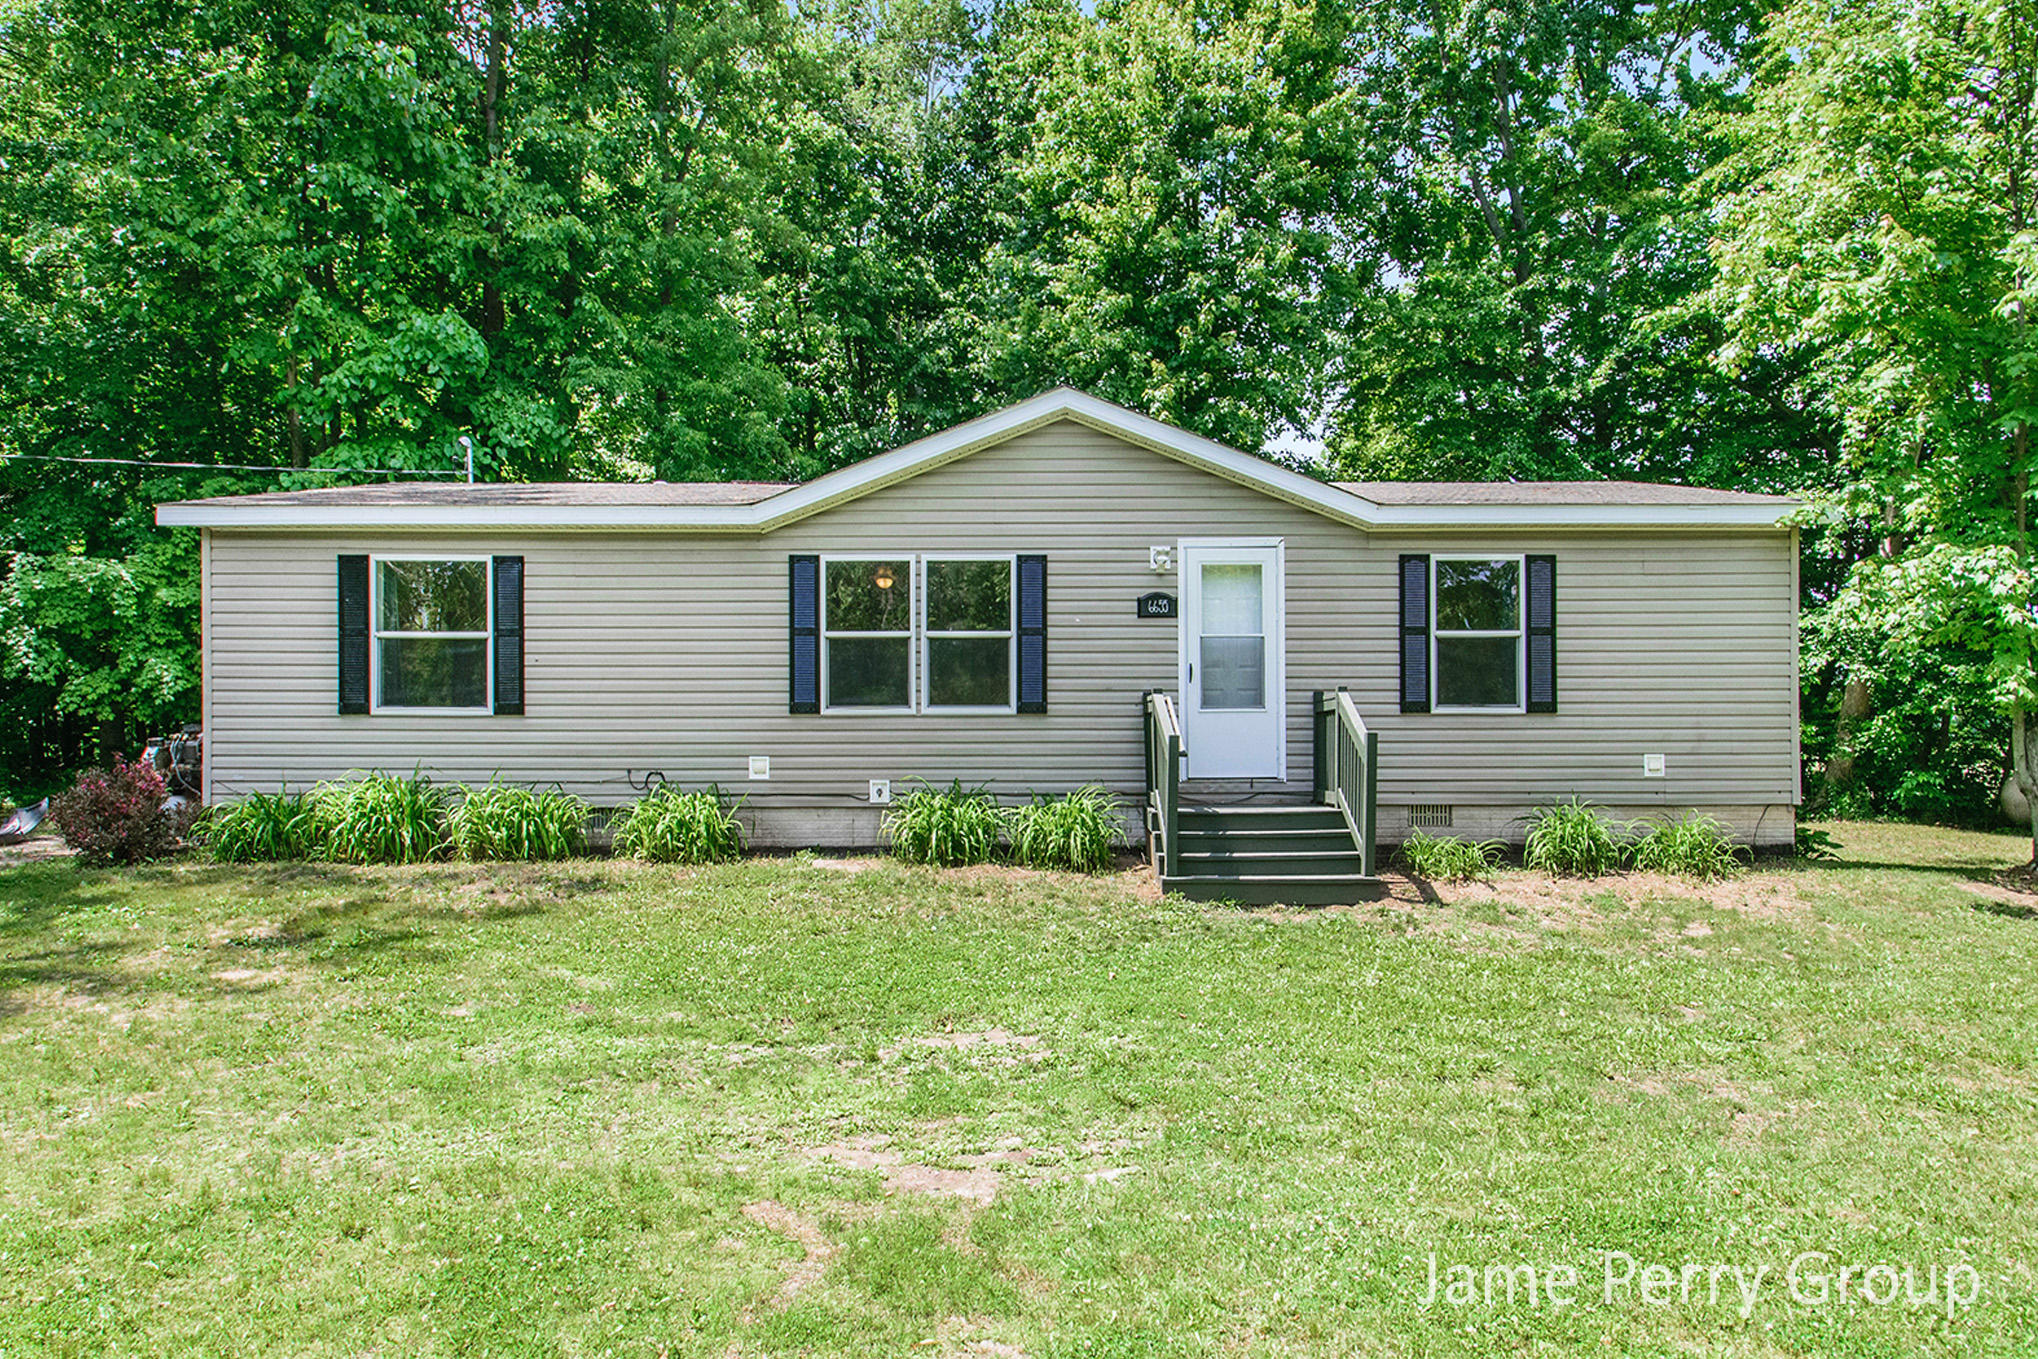 Great updated ranch home on 2 acres in wooded area.  Open floor plan with large living room and open spacious kitchen.  Dining area with walk out patio door to back deck overlooking woods and fire pit for marshmallow roasting.  Private master suite is inviting and on opposite side of home from the additional 2 bedrooms and full bath. Laundry/mud room area off kitchen with storage.  Back yard has storage shed as well with room to play and have campfires.  Home shows well and has lots of upgrades.  Call for a private showing before it's gone. Seller directs listing agent to hold all offers until 06/14/21 at 7pm